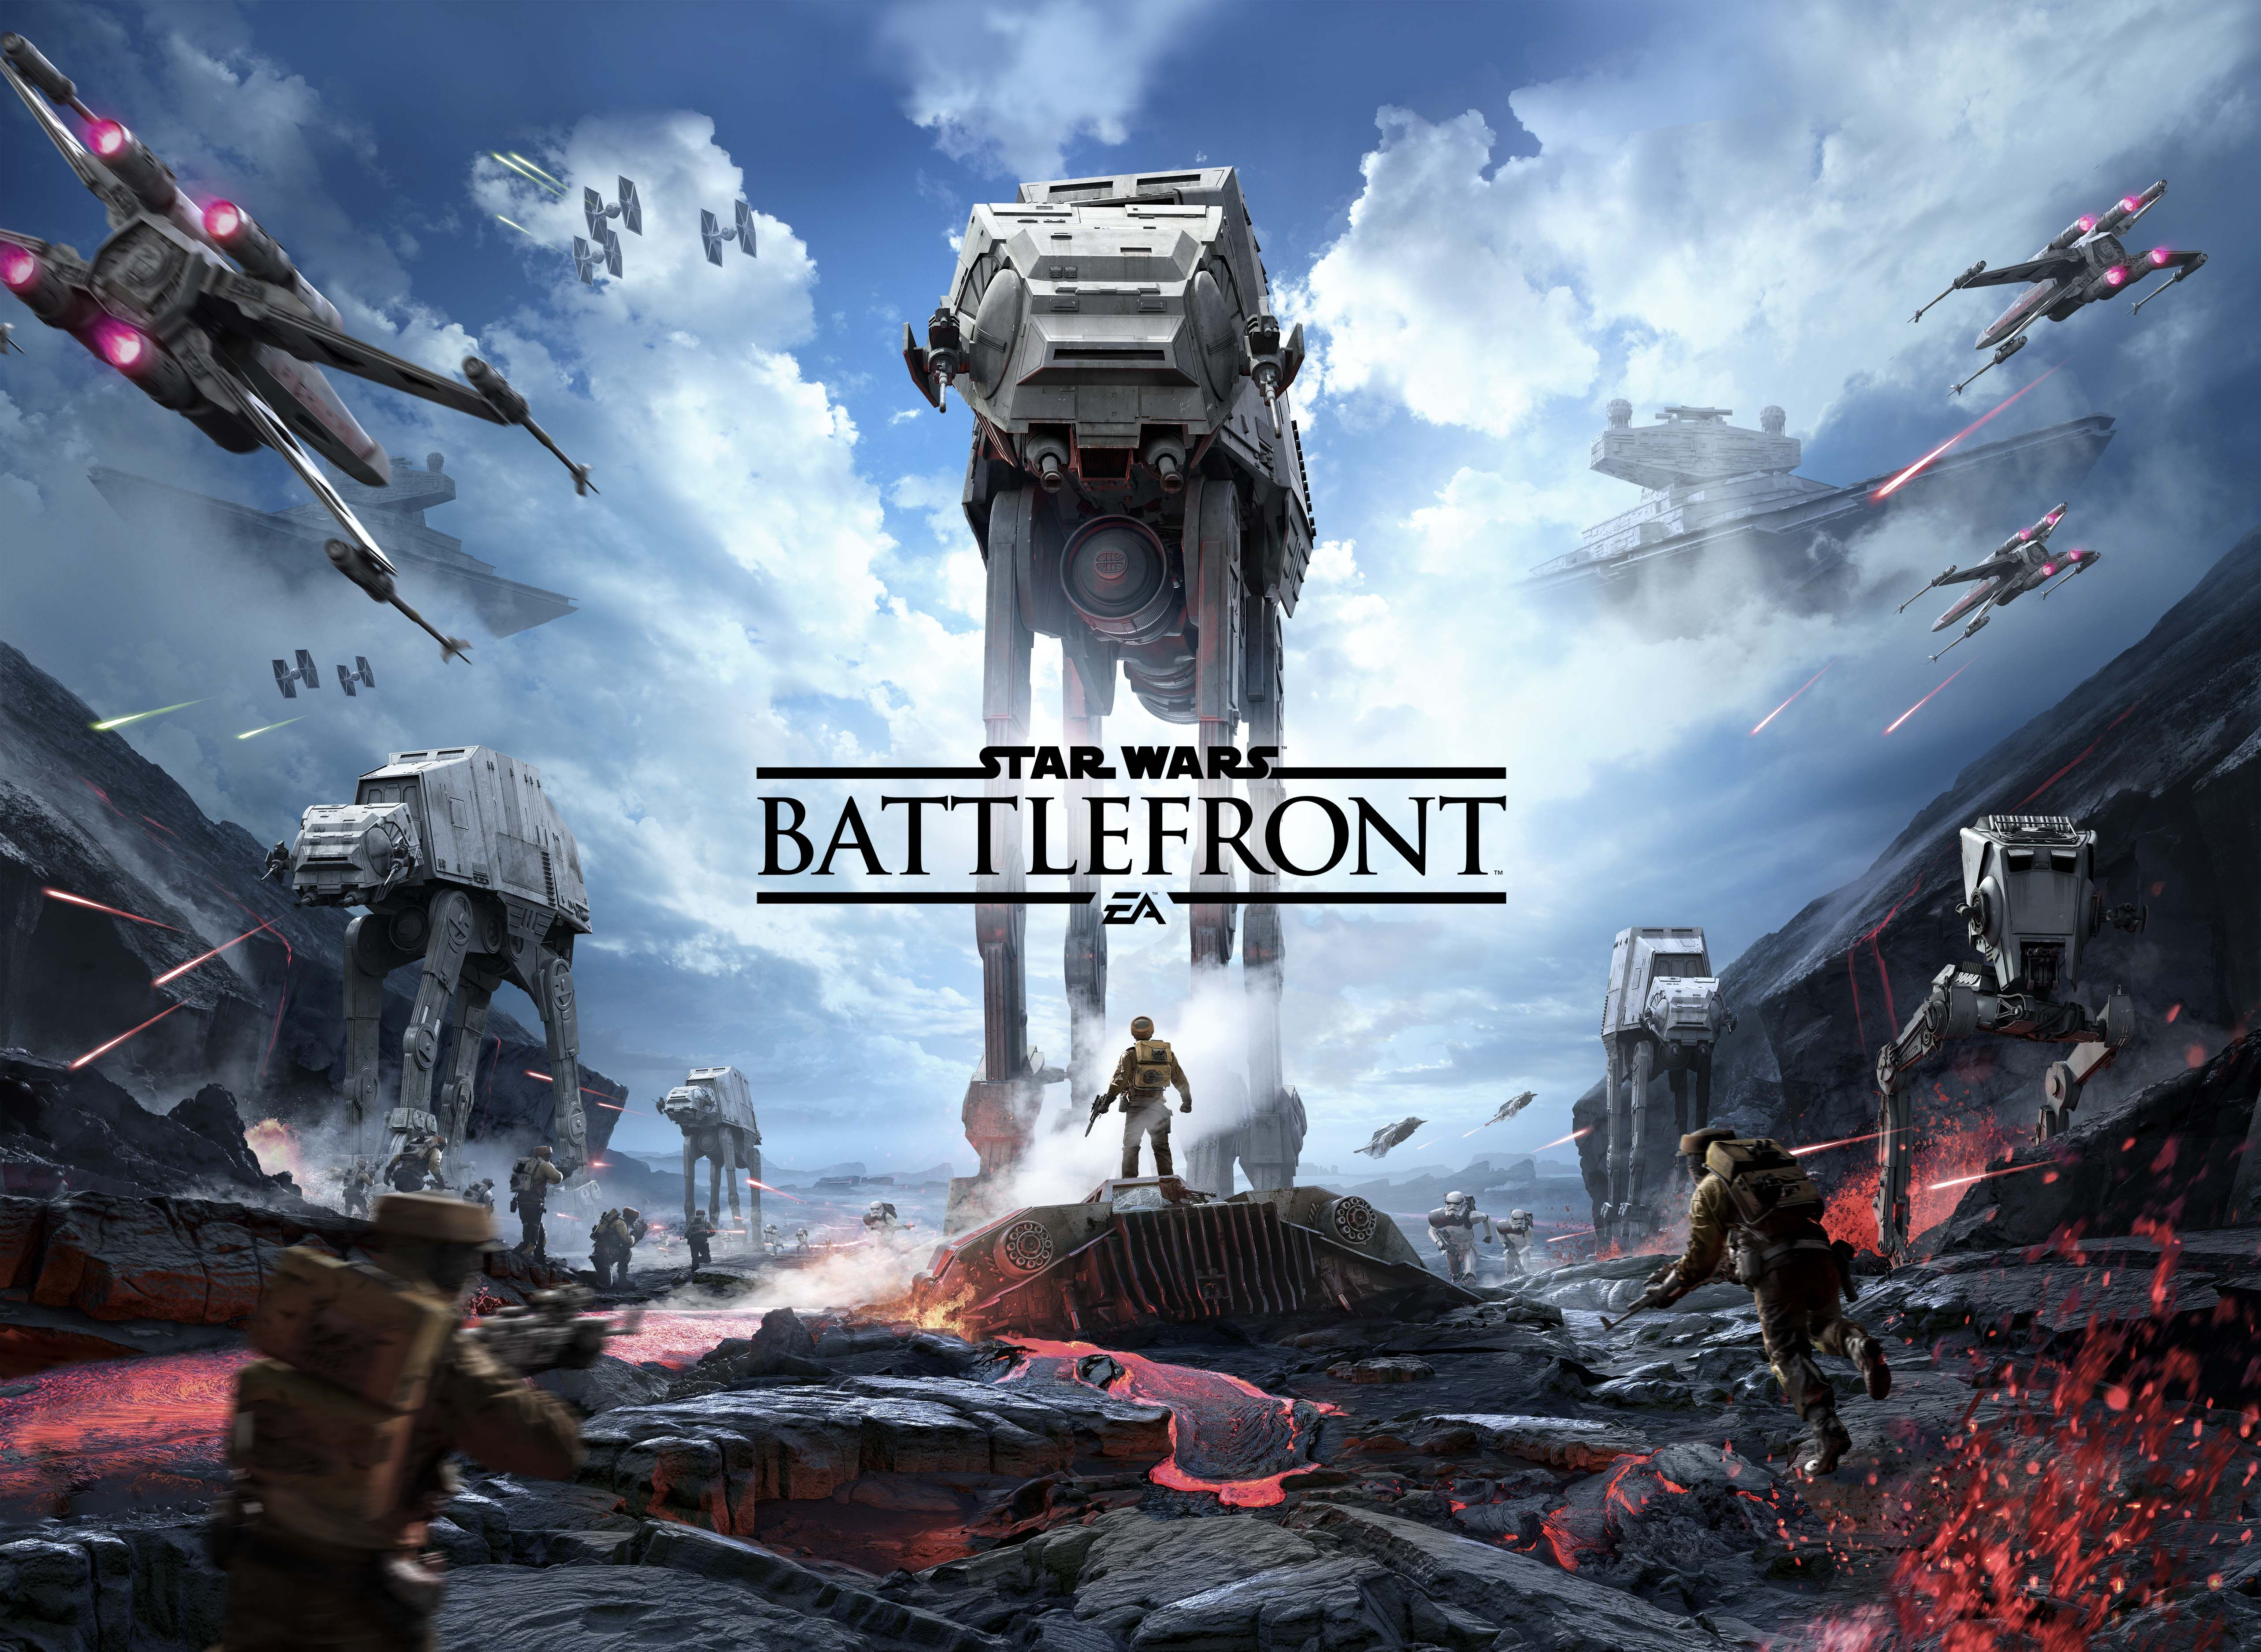 Star Wars Battlefront Wallpaper Background 48669 1920x1080px